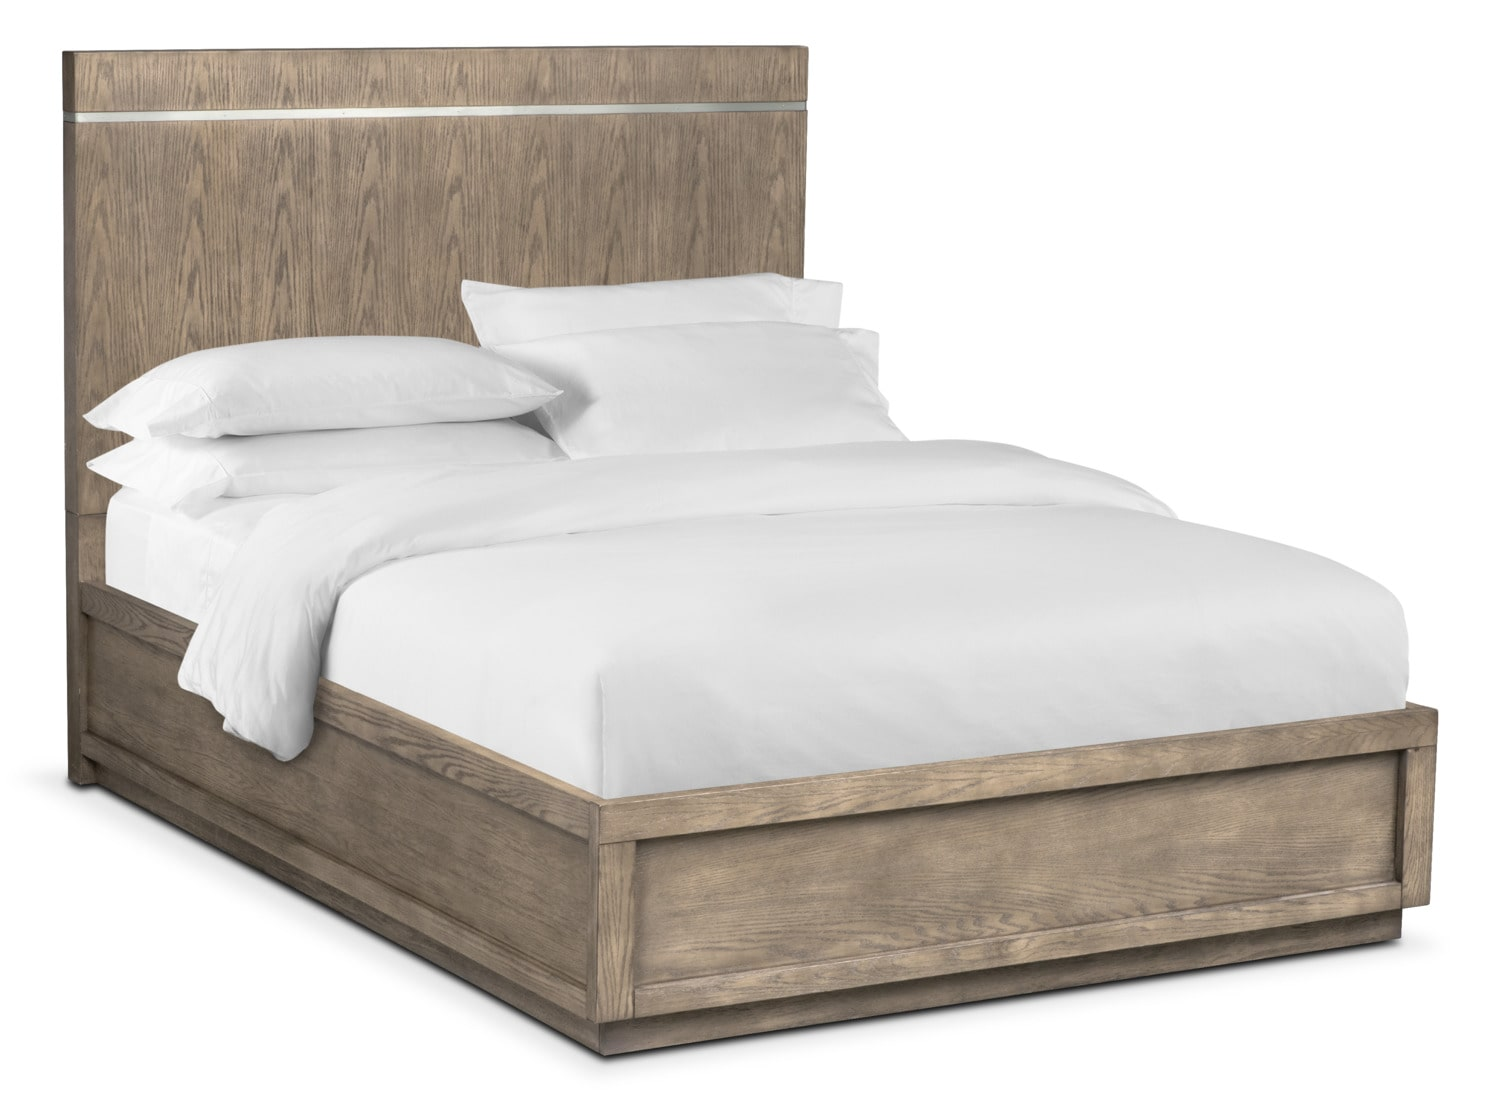 Gavin King Bed - Graystone